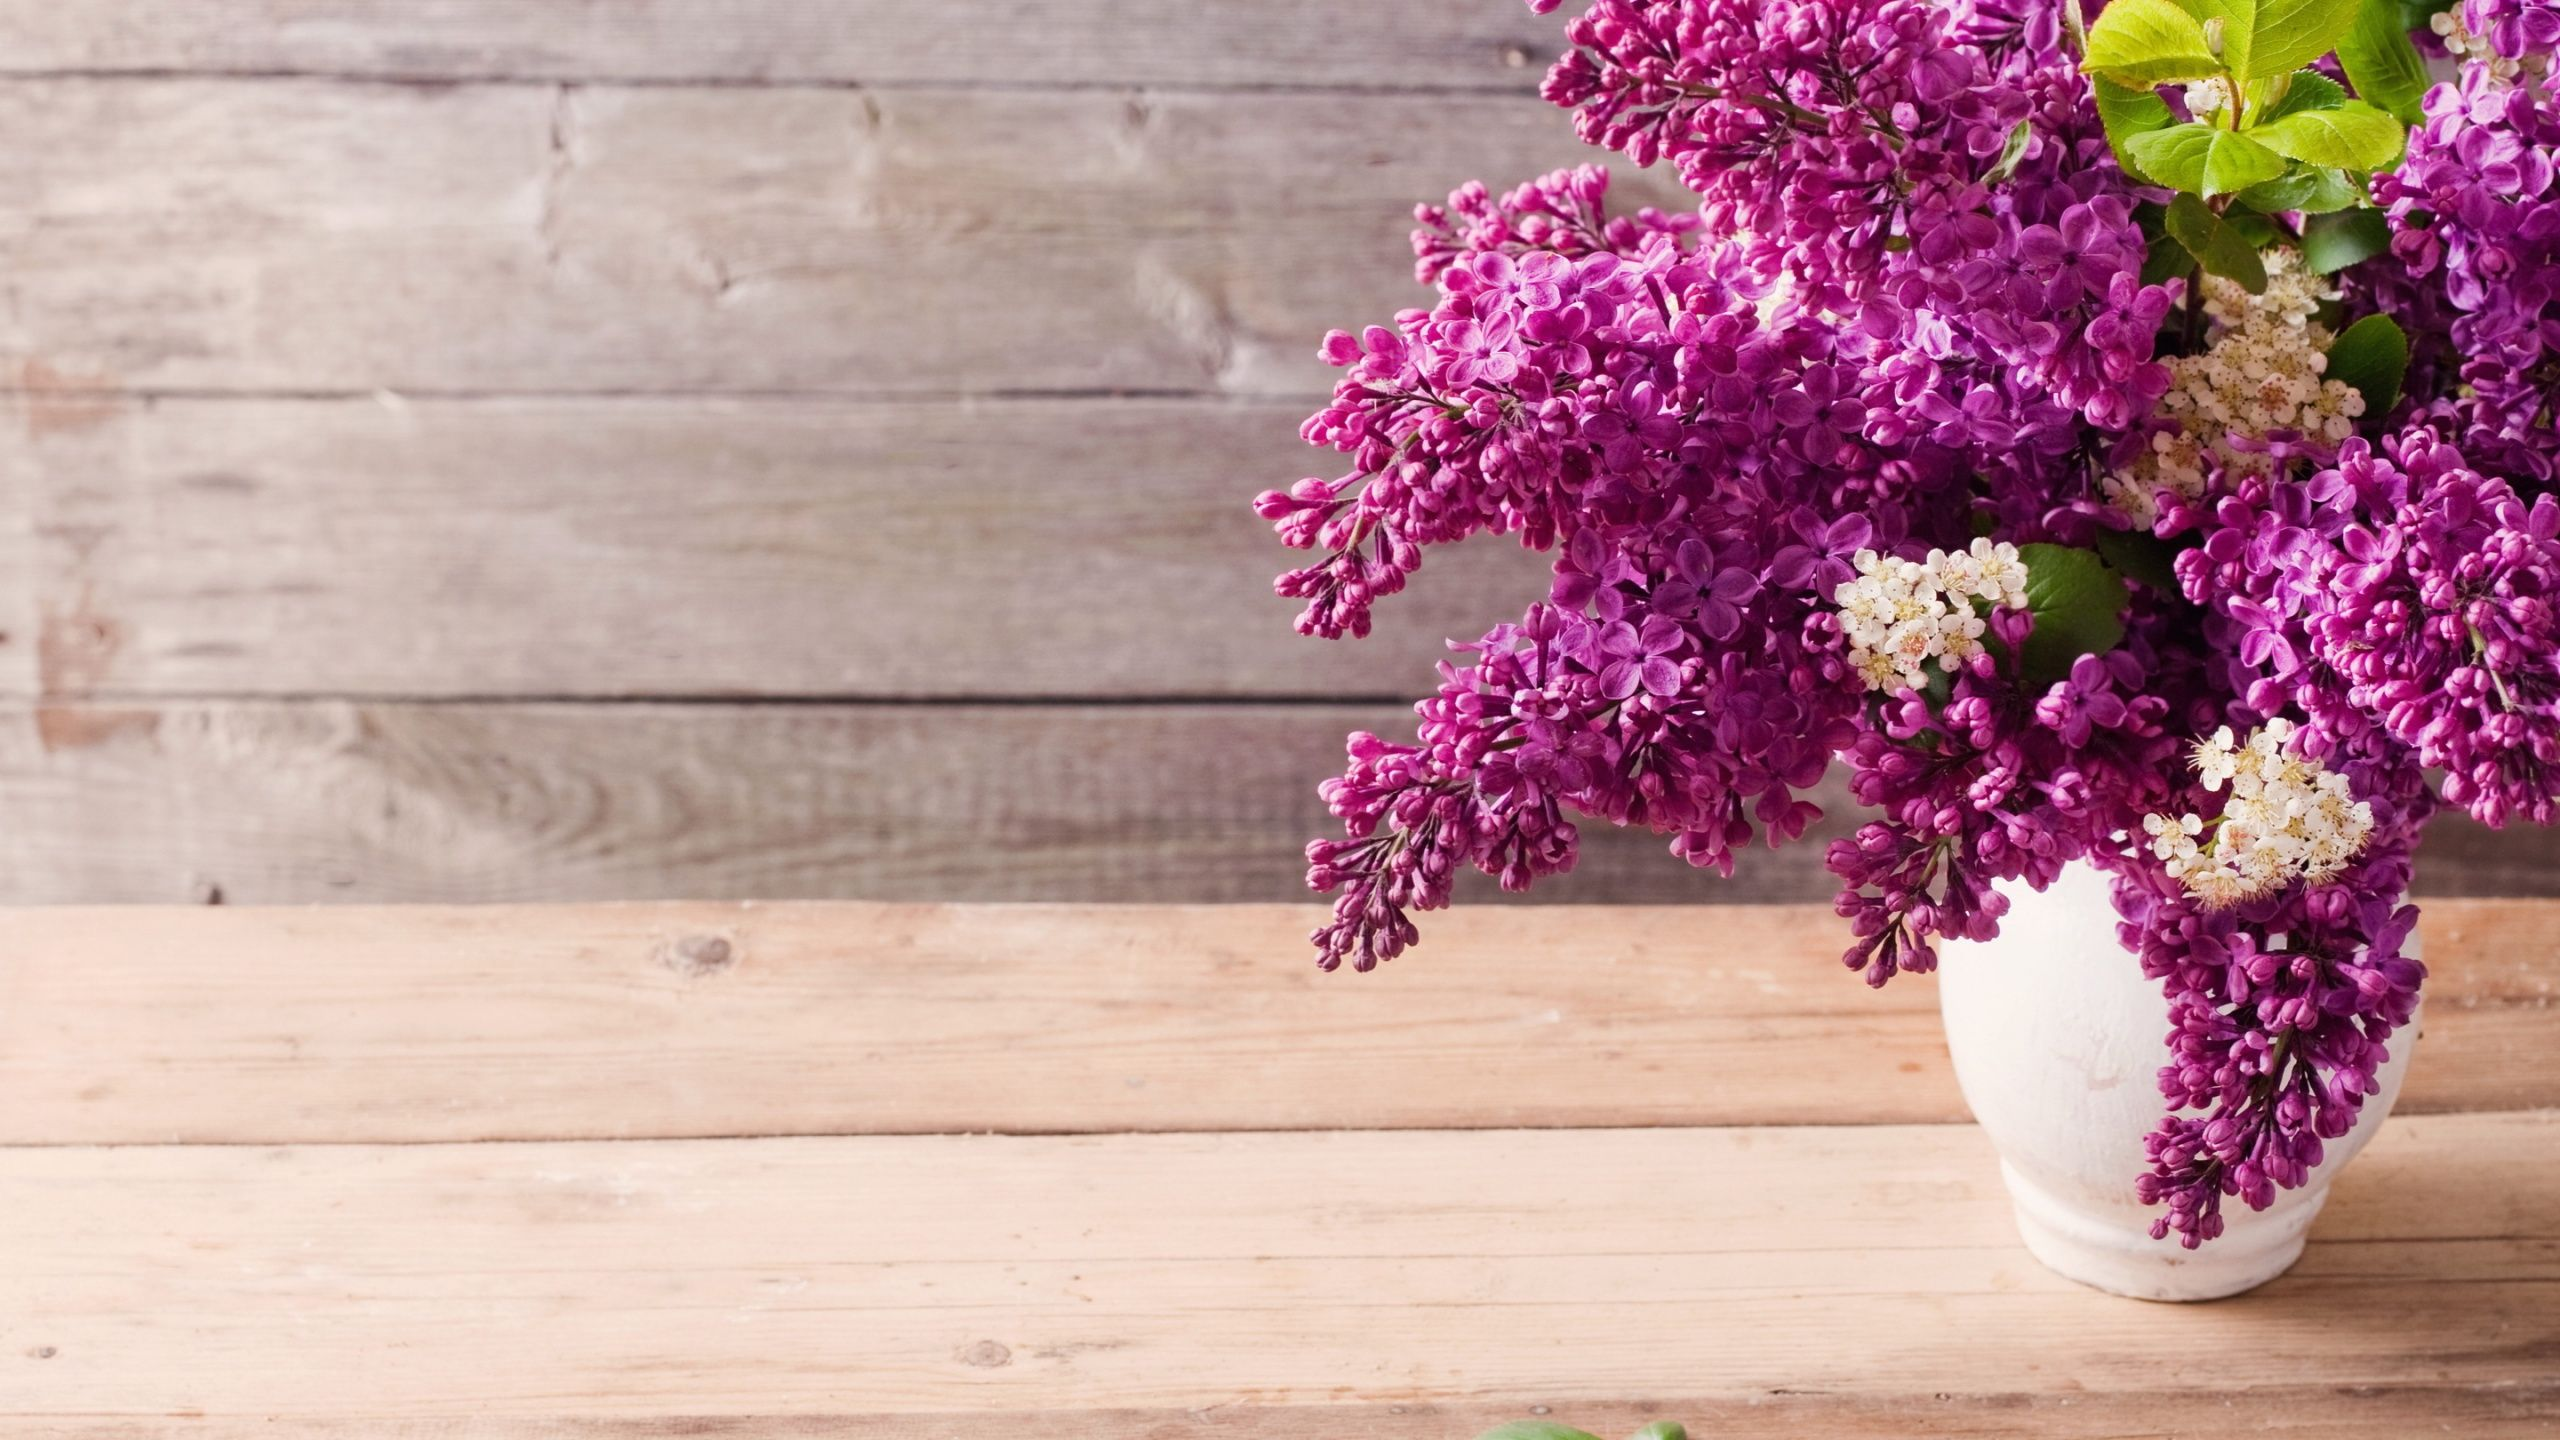 download wallpaper lilac bouquet - photo #18